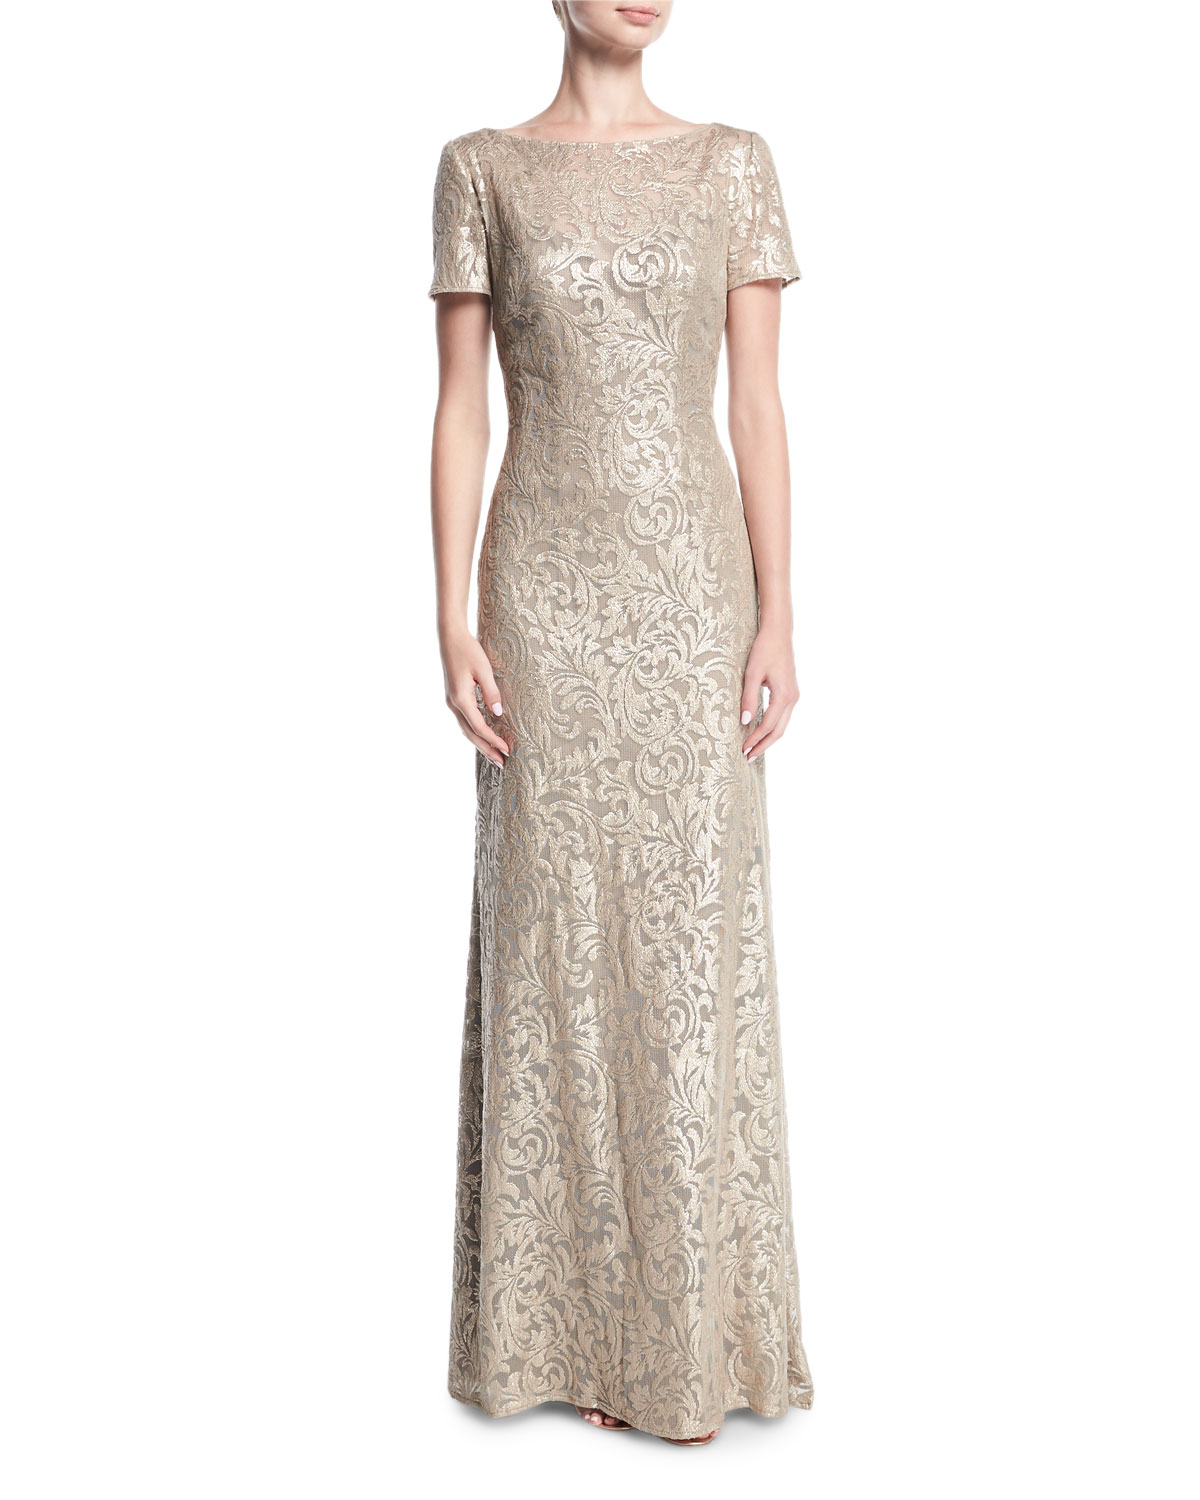 afbd4875a8a La Femme Boat-Neck Short-Sleeve Lace Embroidered Evening Gown ...